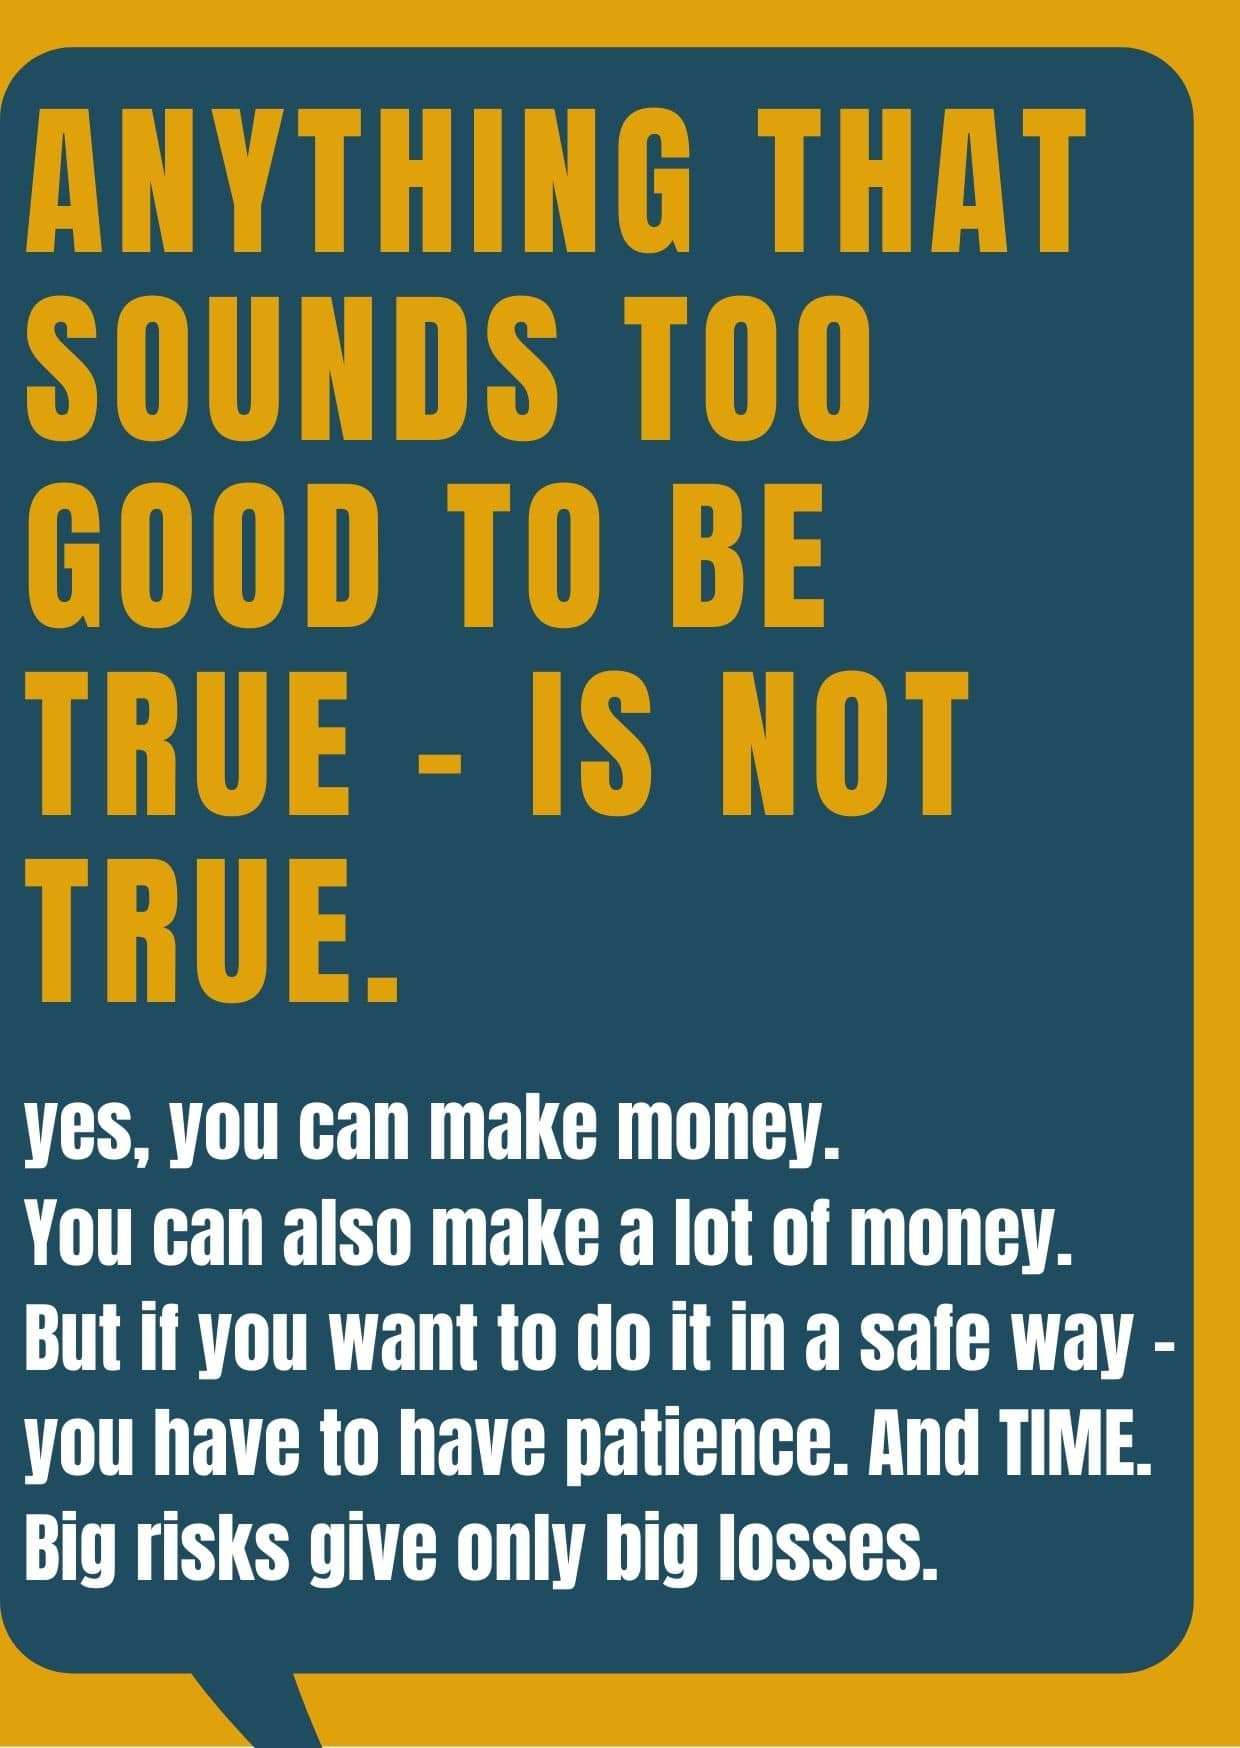 Anything that sounds too good to be true- is not true.